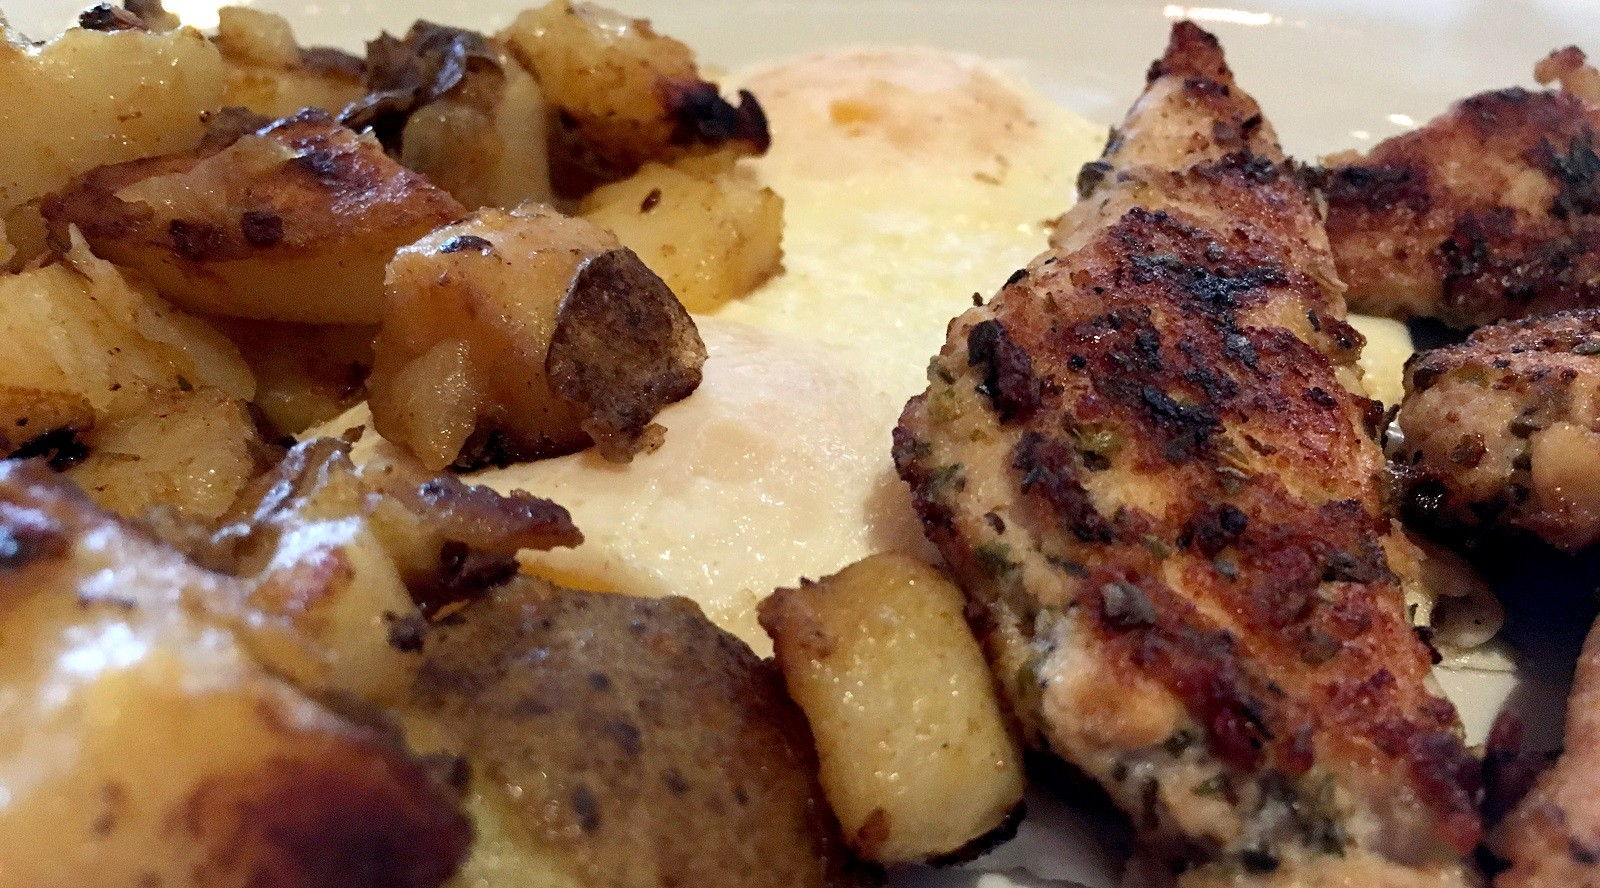 Homefries, eggs and chicken souvlaki are all crucial to Towne Restaurant's menu, and all three are part of the lunch buffet on Sundays. (Ben Siegel/Special to The News)